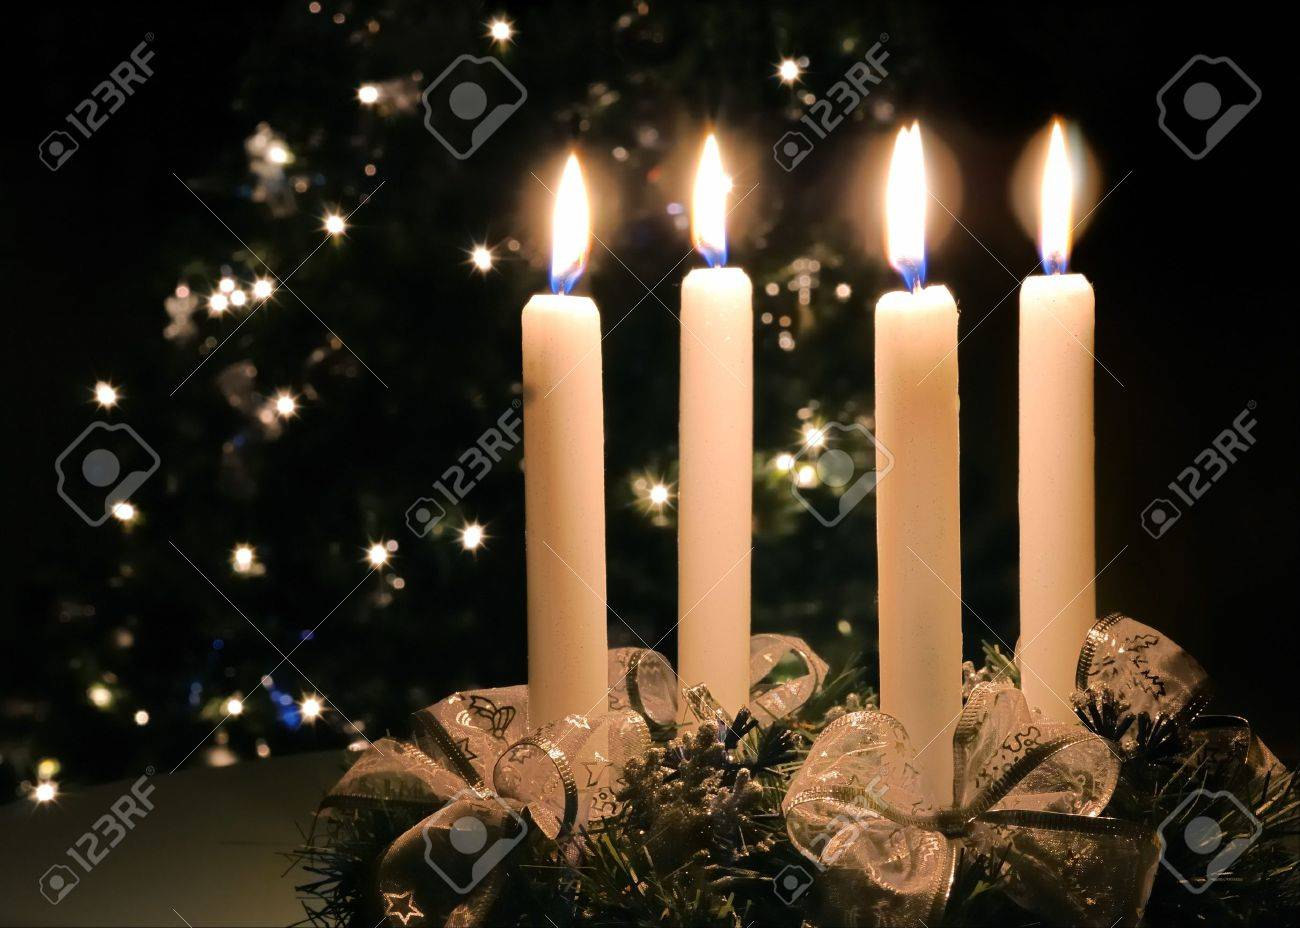 advent candles images u0026 stock pictures royalty free advent